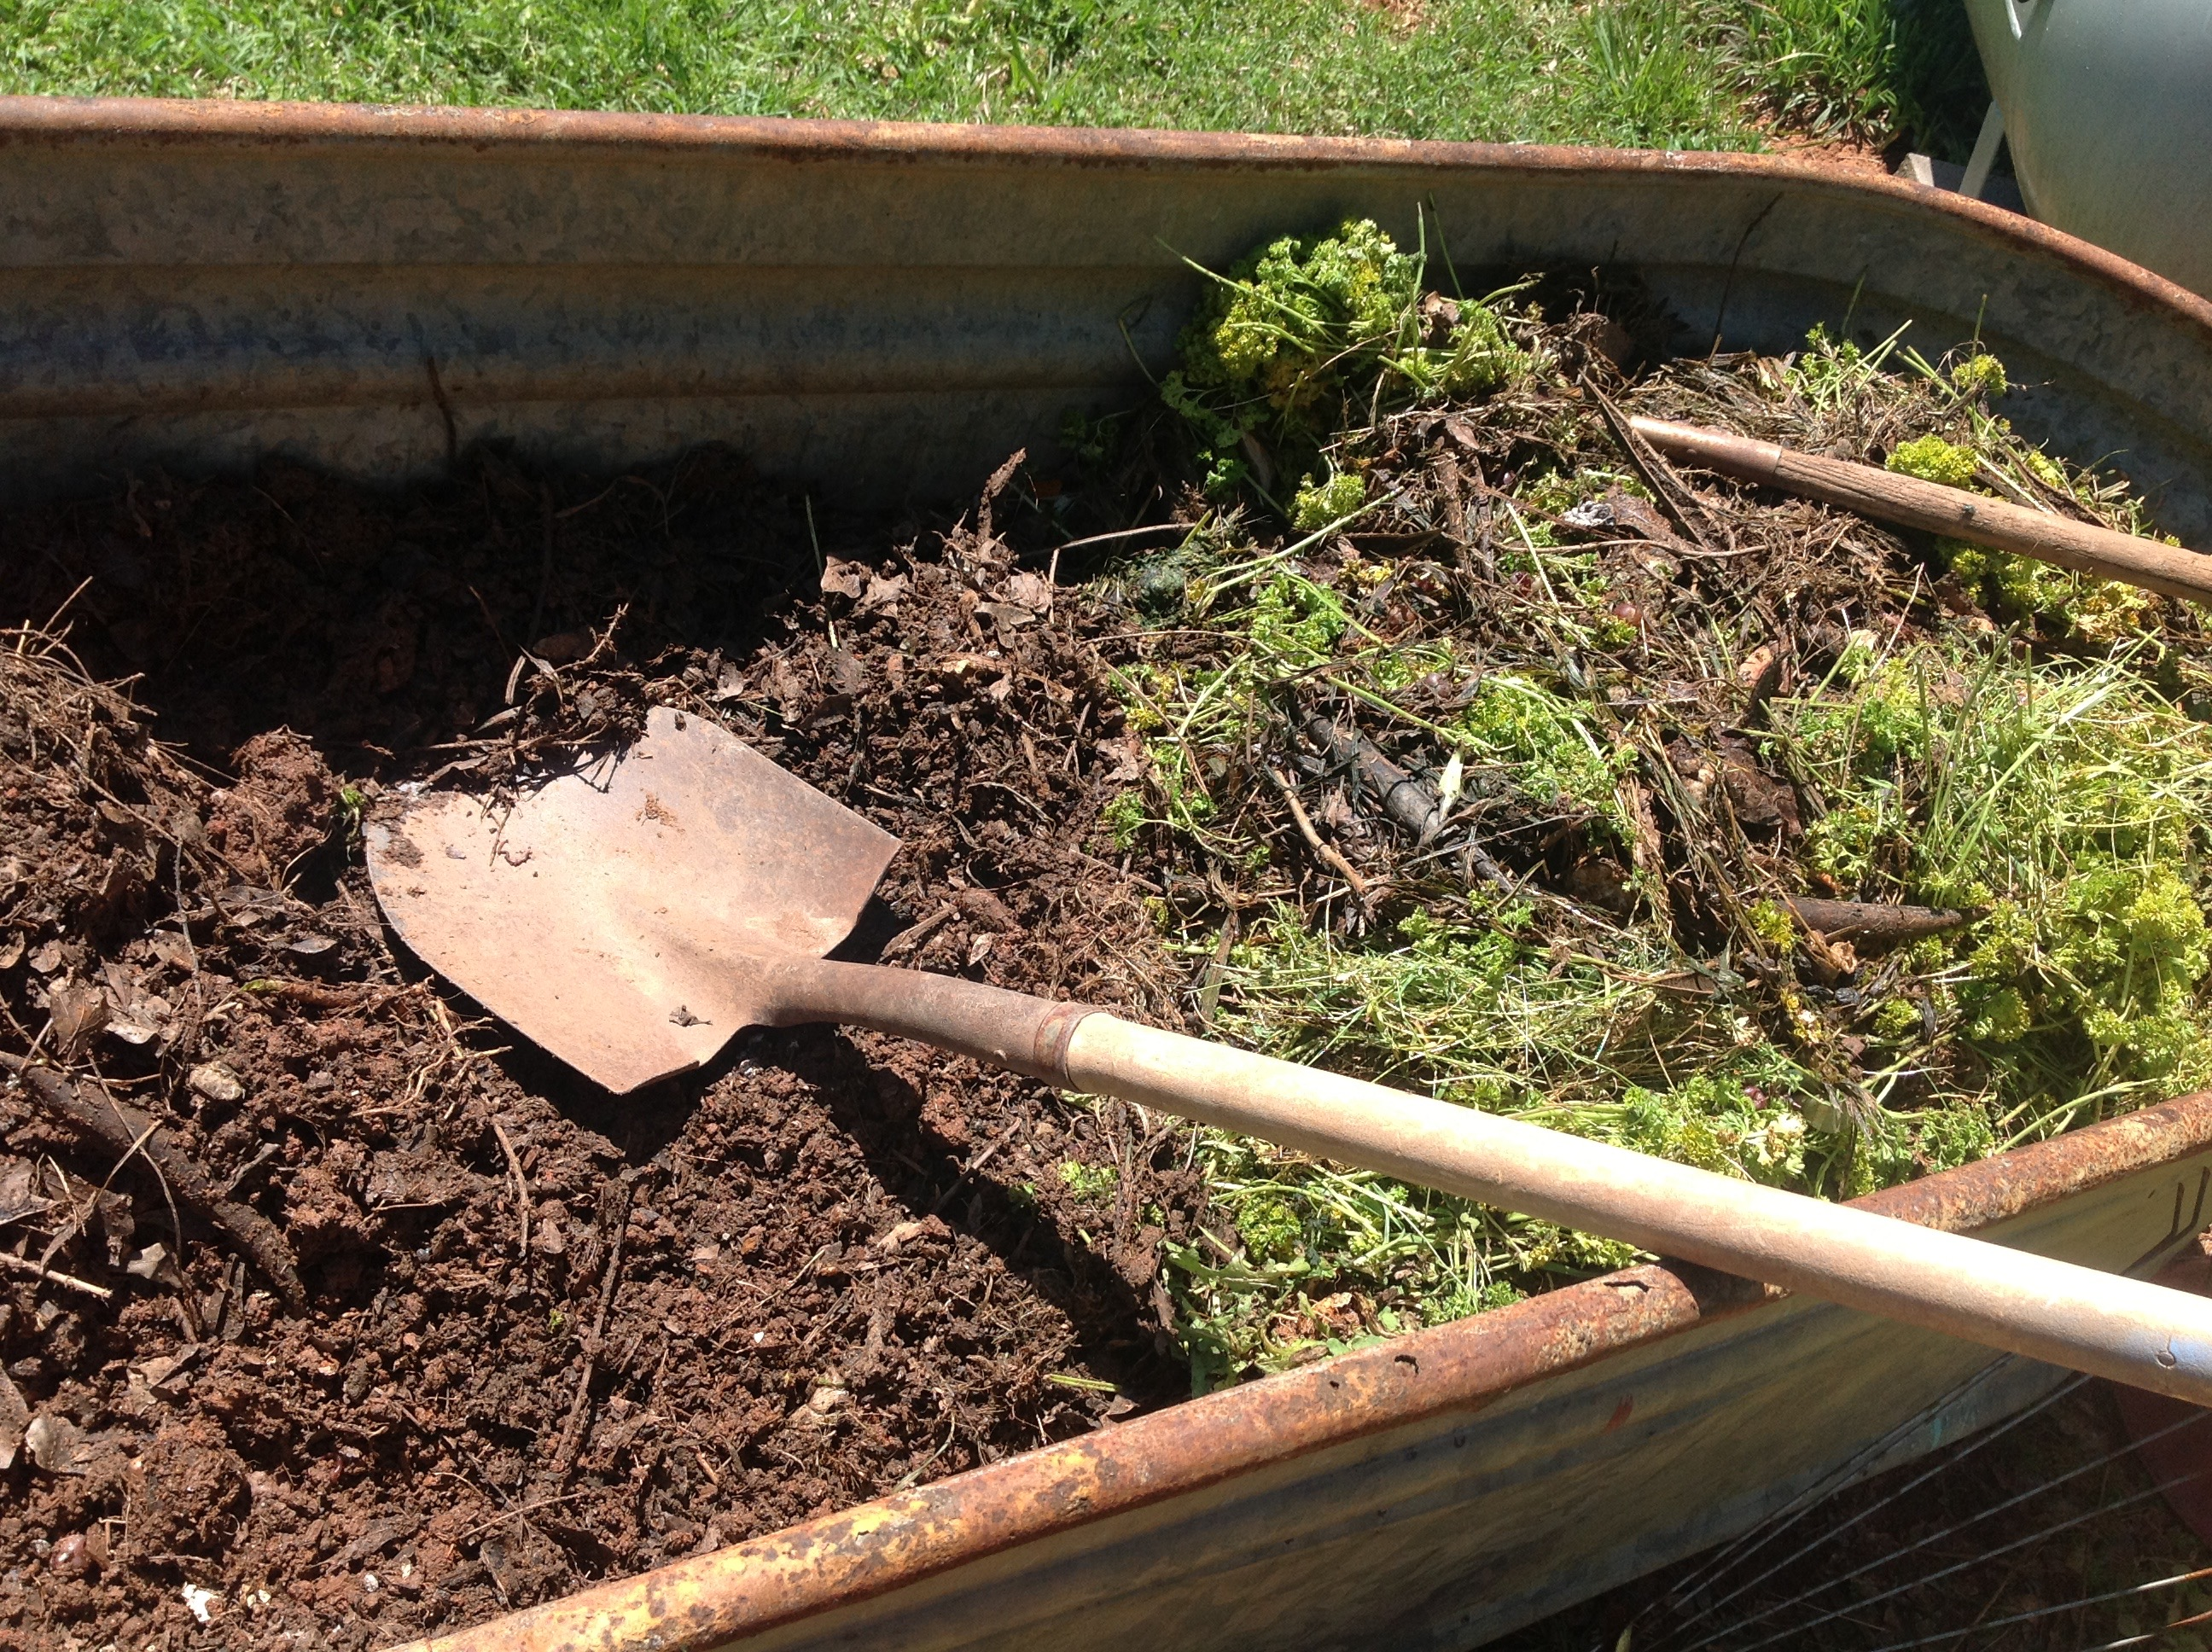 To maintain a healthy compost pile, you need to maintain the proper moisture level. Compost organisms need water to survive and function at their best. Inadequate water will inhibit the activities of compost organisms, resulting in a slower compost process. If the pile is too moist, water will displace air and create anaerobic conditions. The moisture level of a compost pile should be roughly 40 to 60 percent.